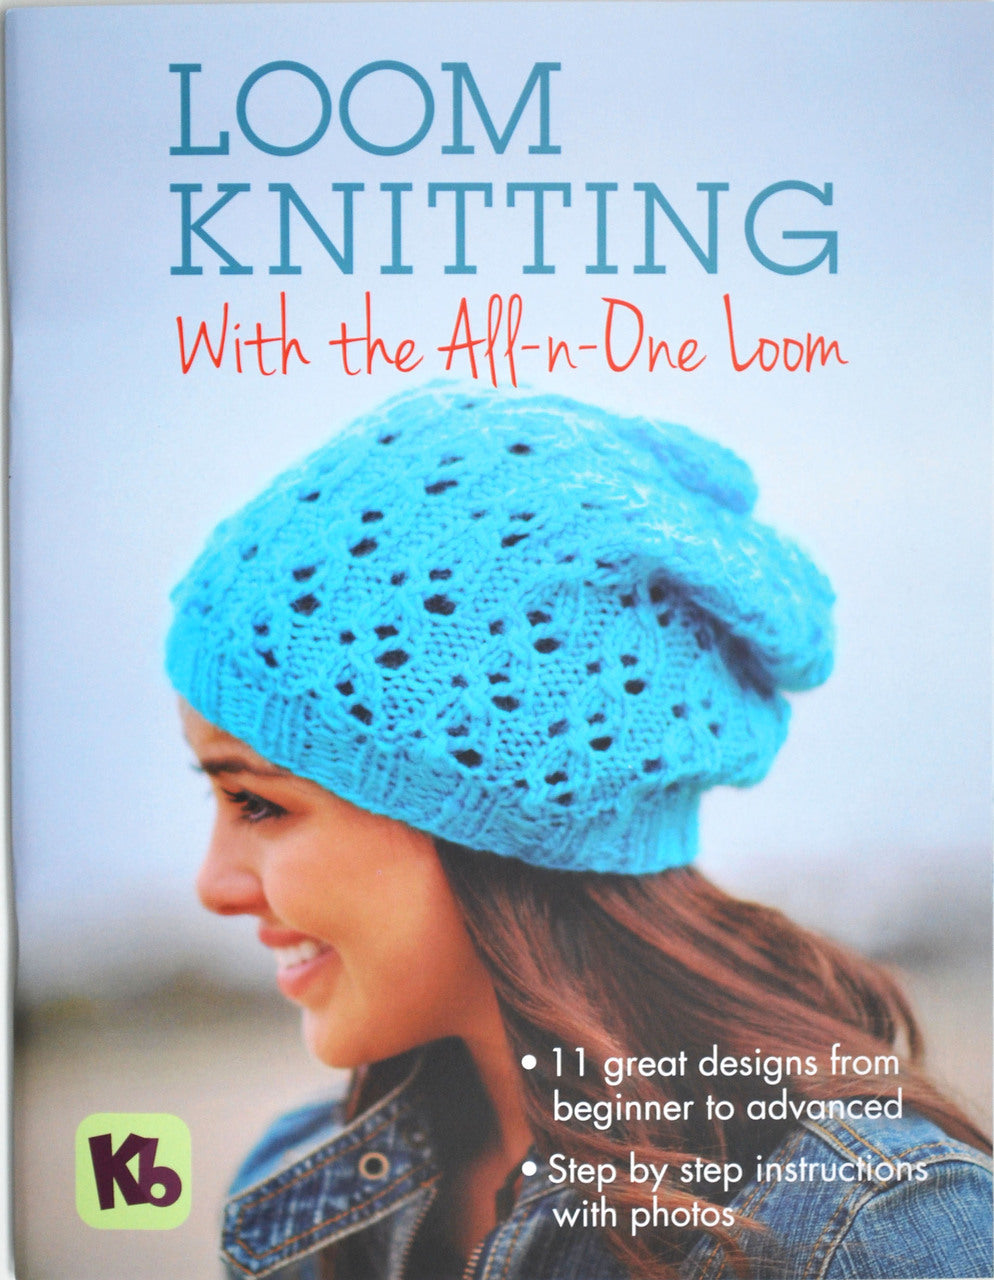 Loom Knitting With the  all in one Loom